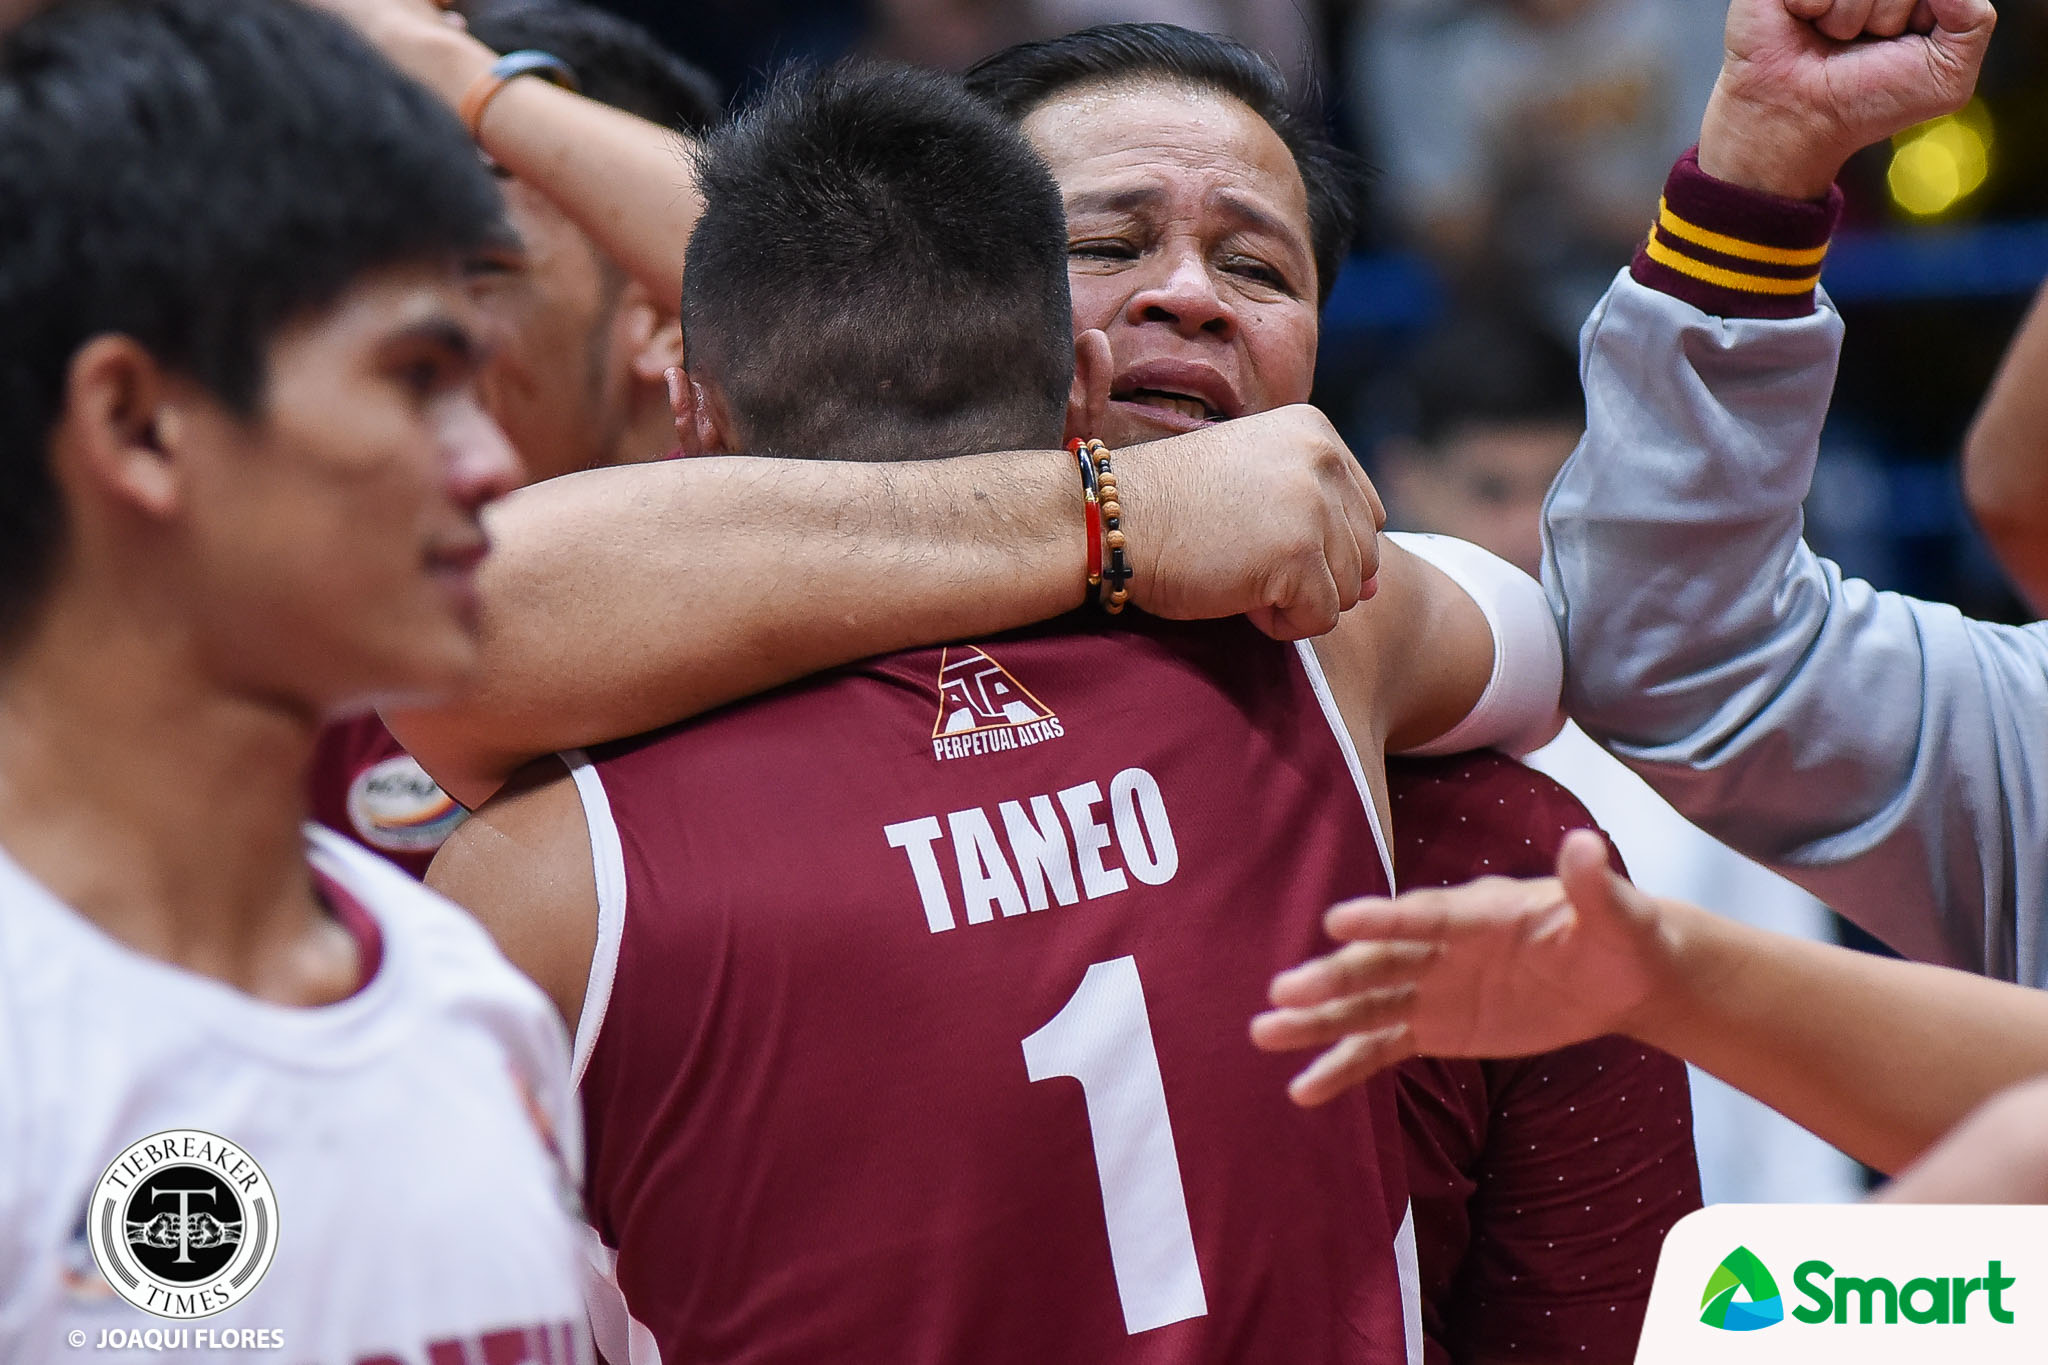 Tiebreaker Times Sammy Acaylar does part to help COVID-19 frontliners News UPHSD Volleyball  Sammy Acaylar Coronavirus Pandemic